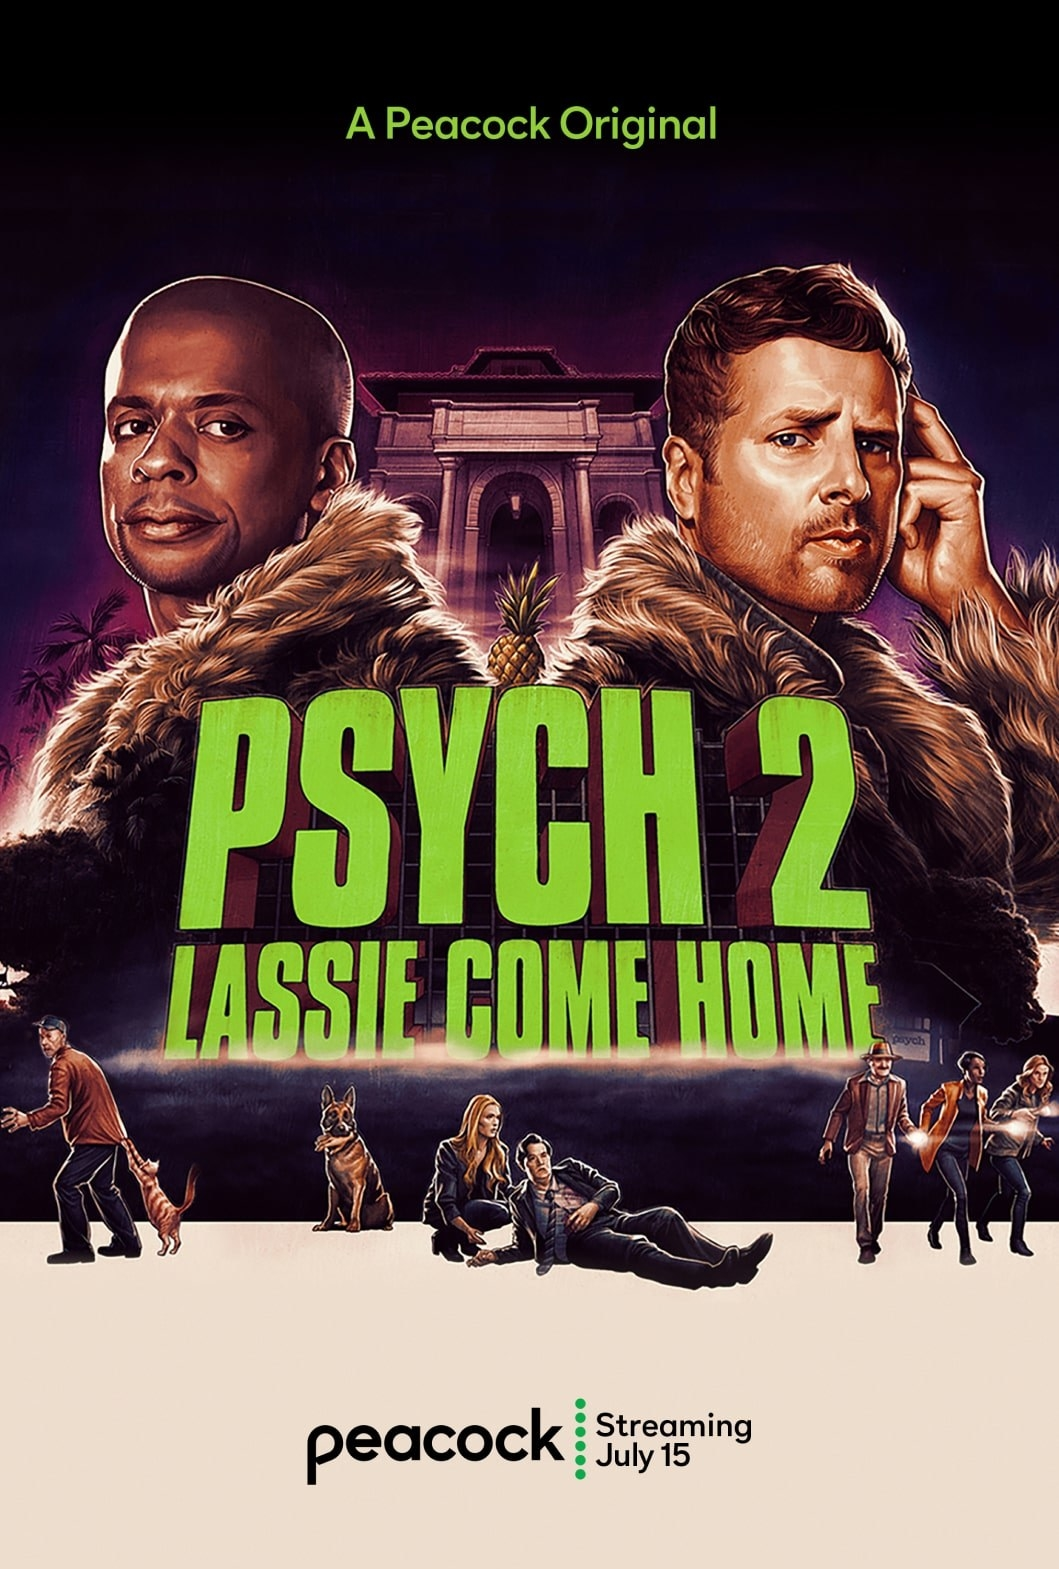 the poster for psych 2 lassie come home with an array of characters on it